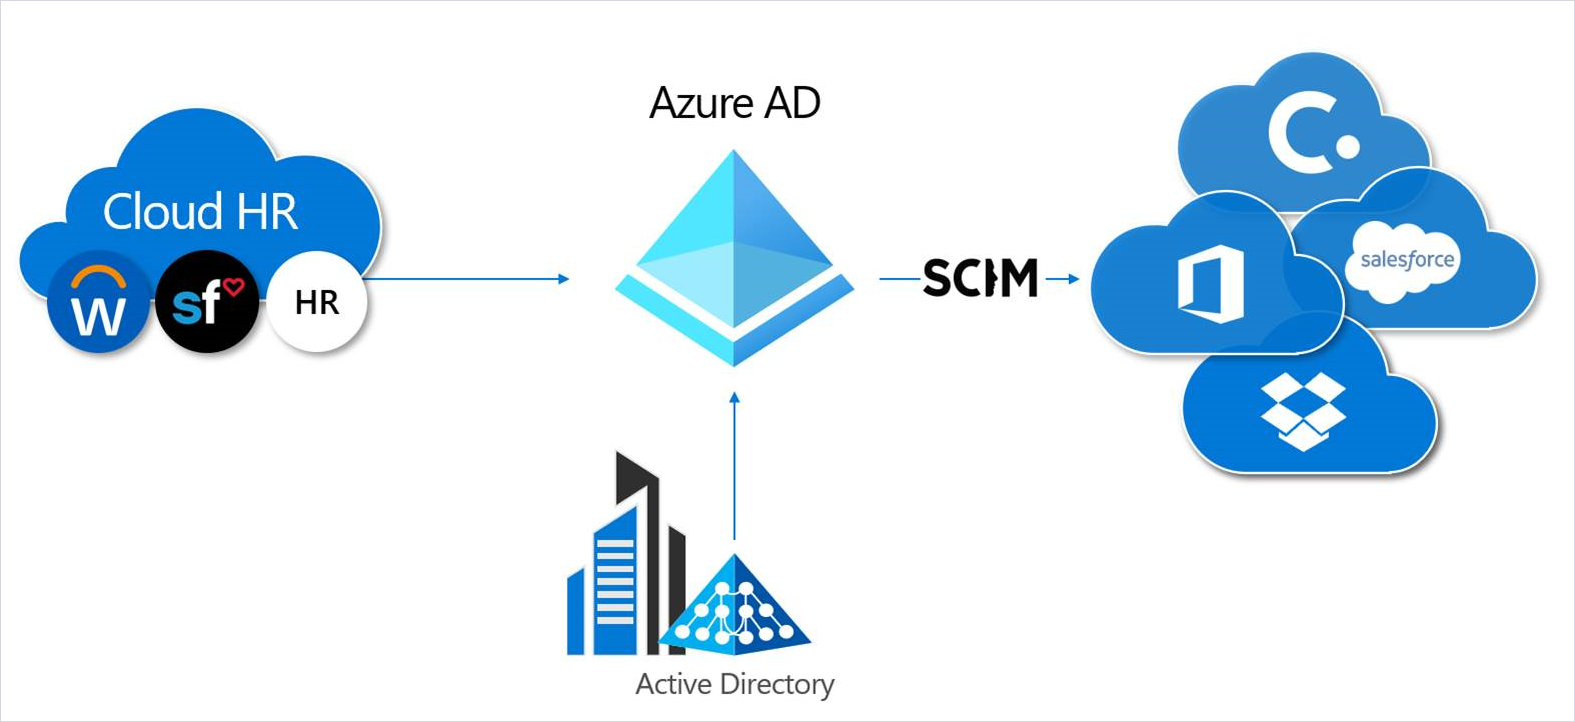 Infographic explaining Azure AD automated provisioning, with Azure AD in the middle; Active Directory, Cloud HR, and SCIM surrounding it.